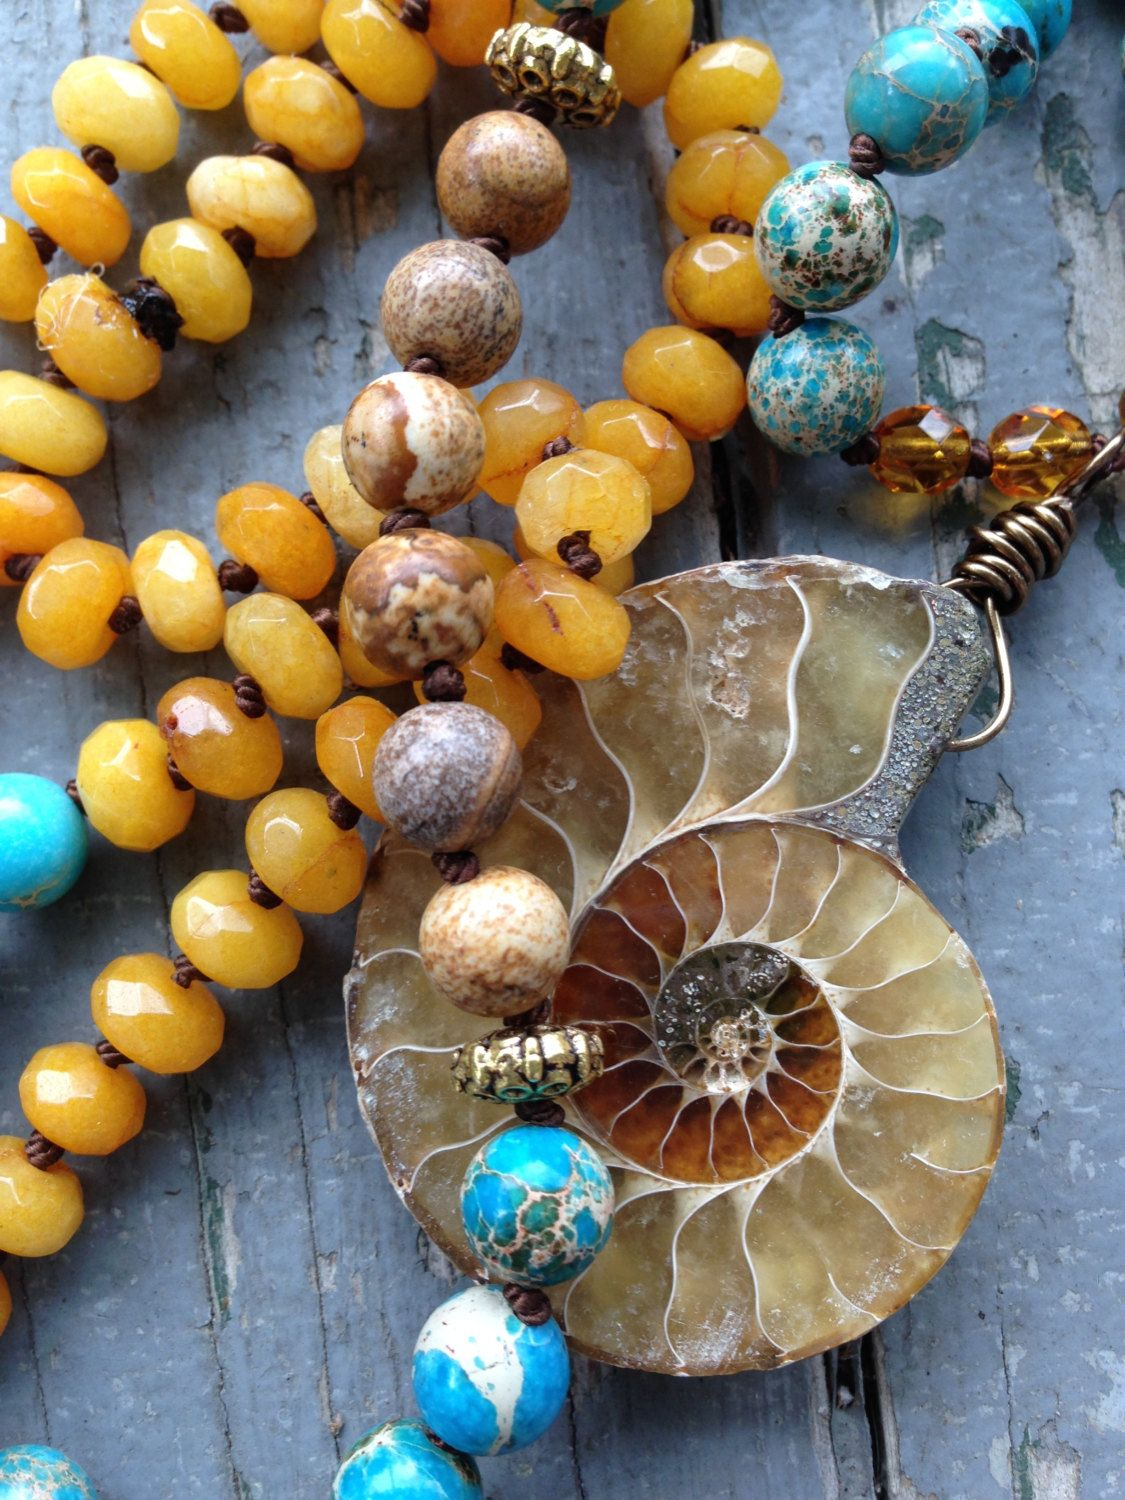 Bohemian necklace Vibrant Sea Sediment Jasper beads hand knotted with Ammonite Pendant by SeeJanesBeads by SeeJanesBeads on Etsy